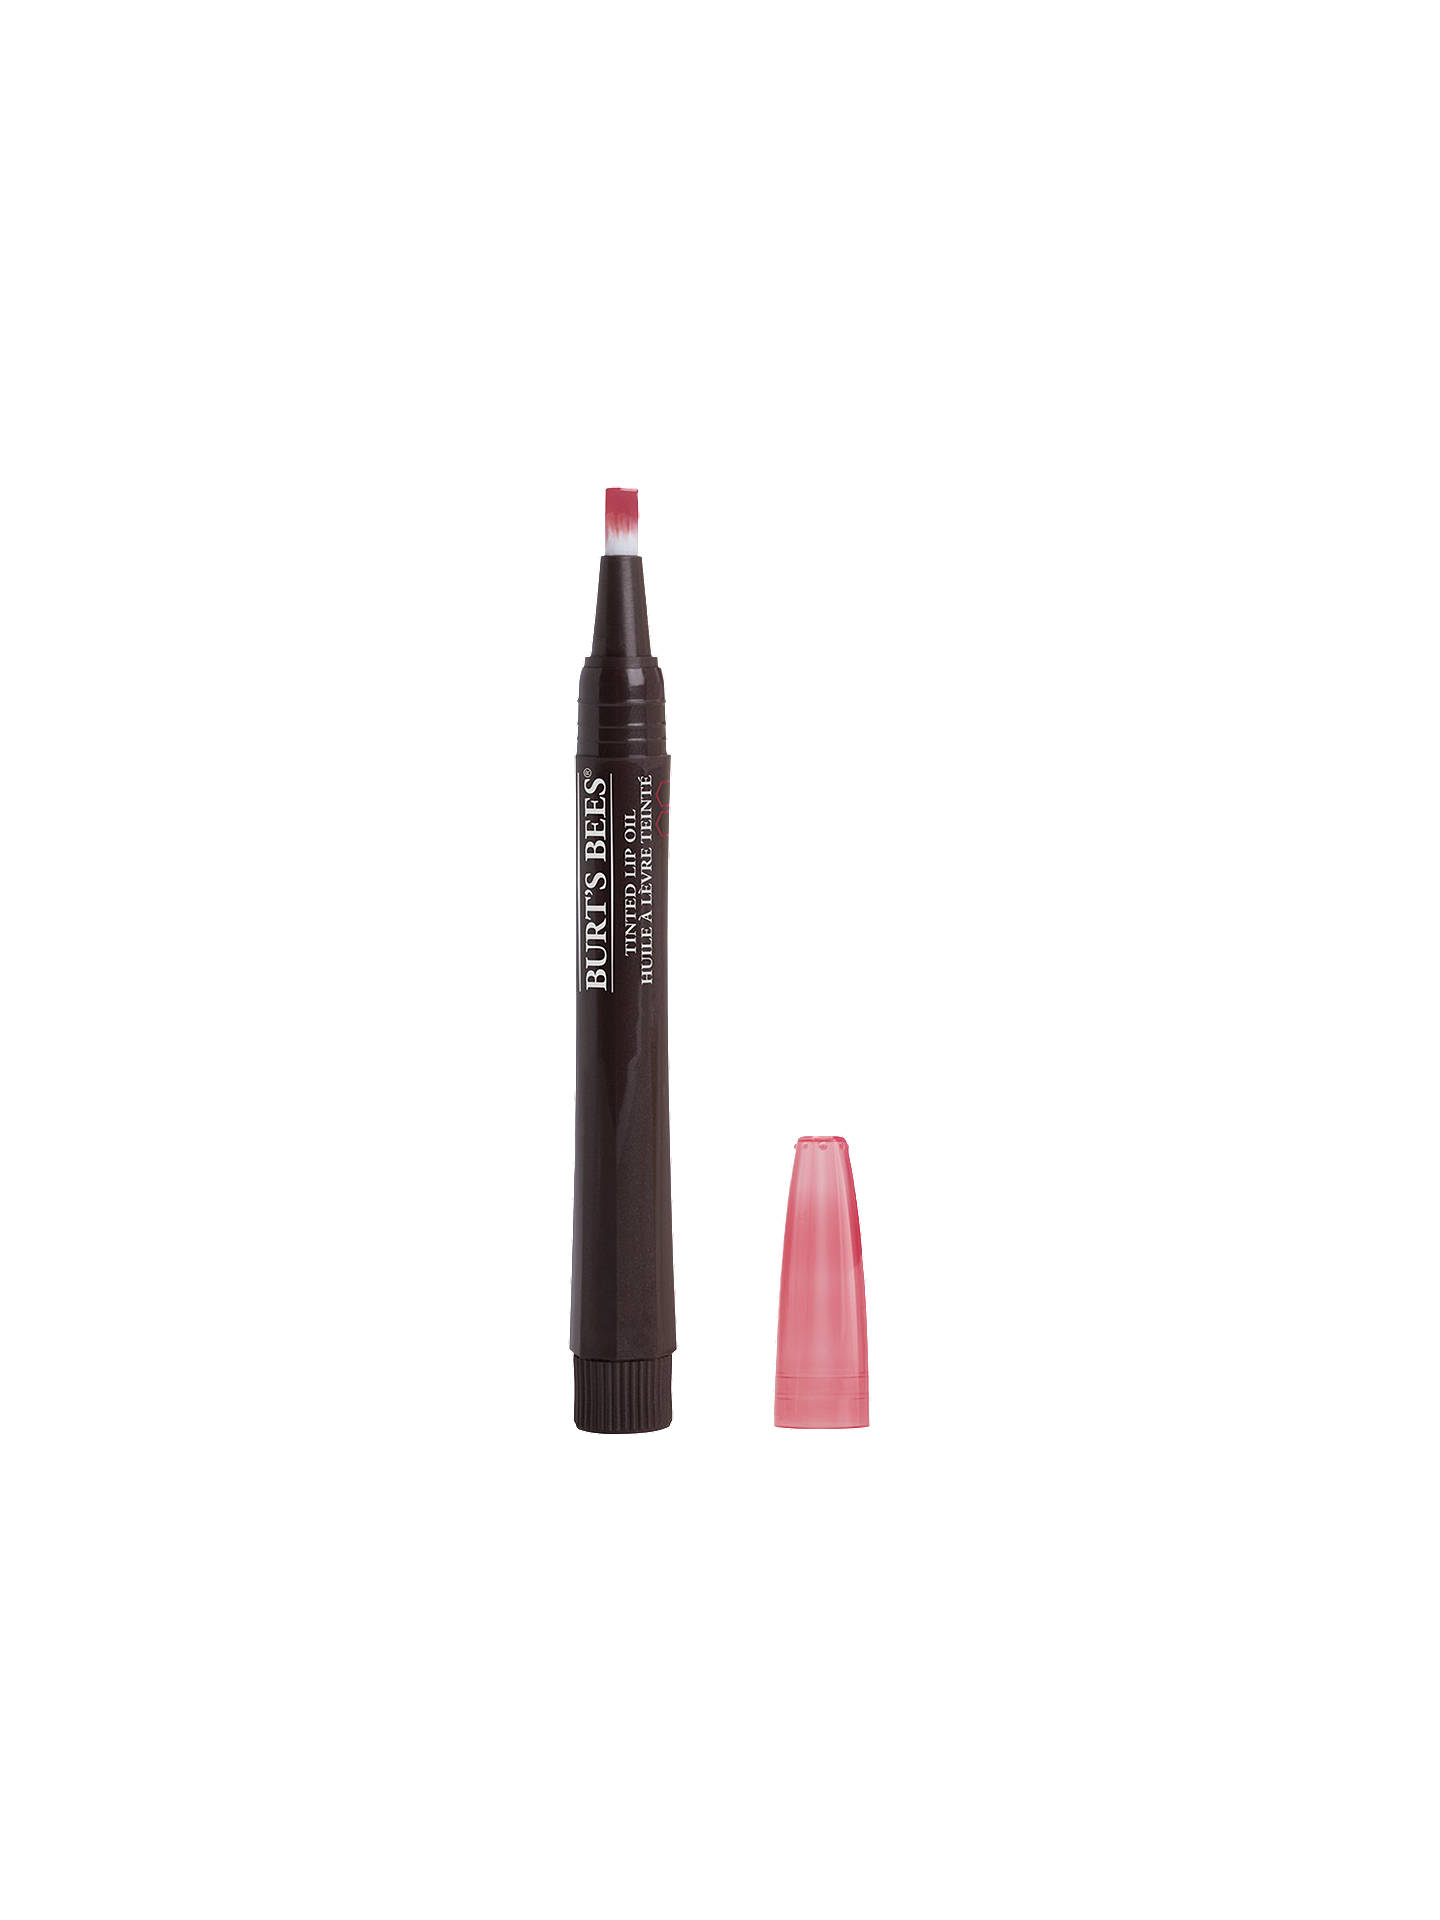 BuyBurt's Bees Tinted Lip Oil, Crimson Breeze Online at johnlewis.com